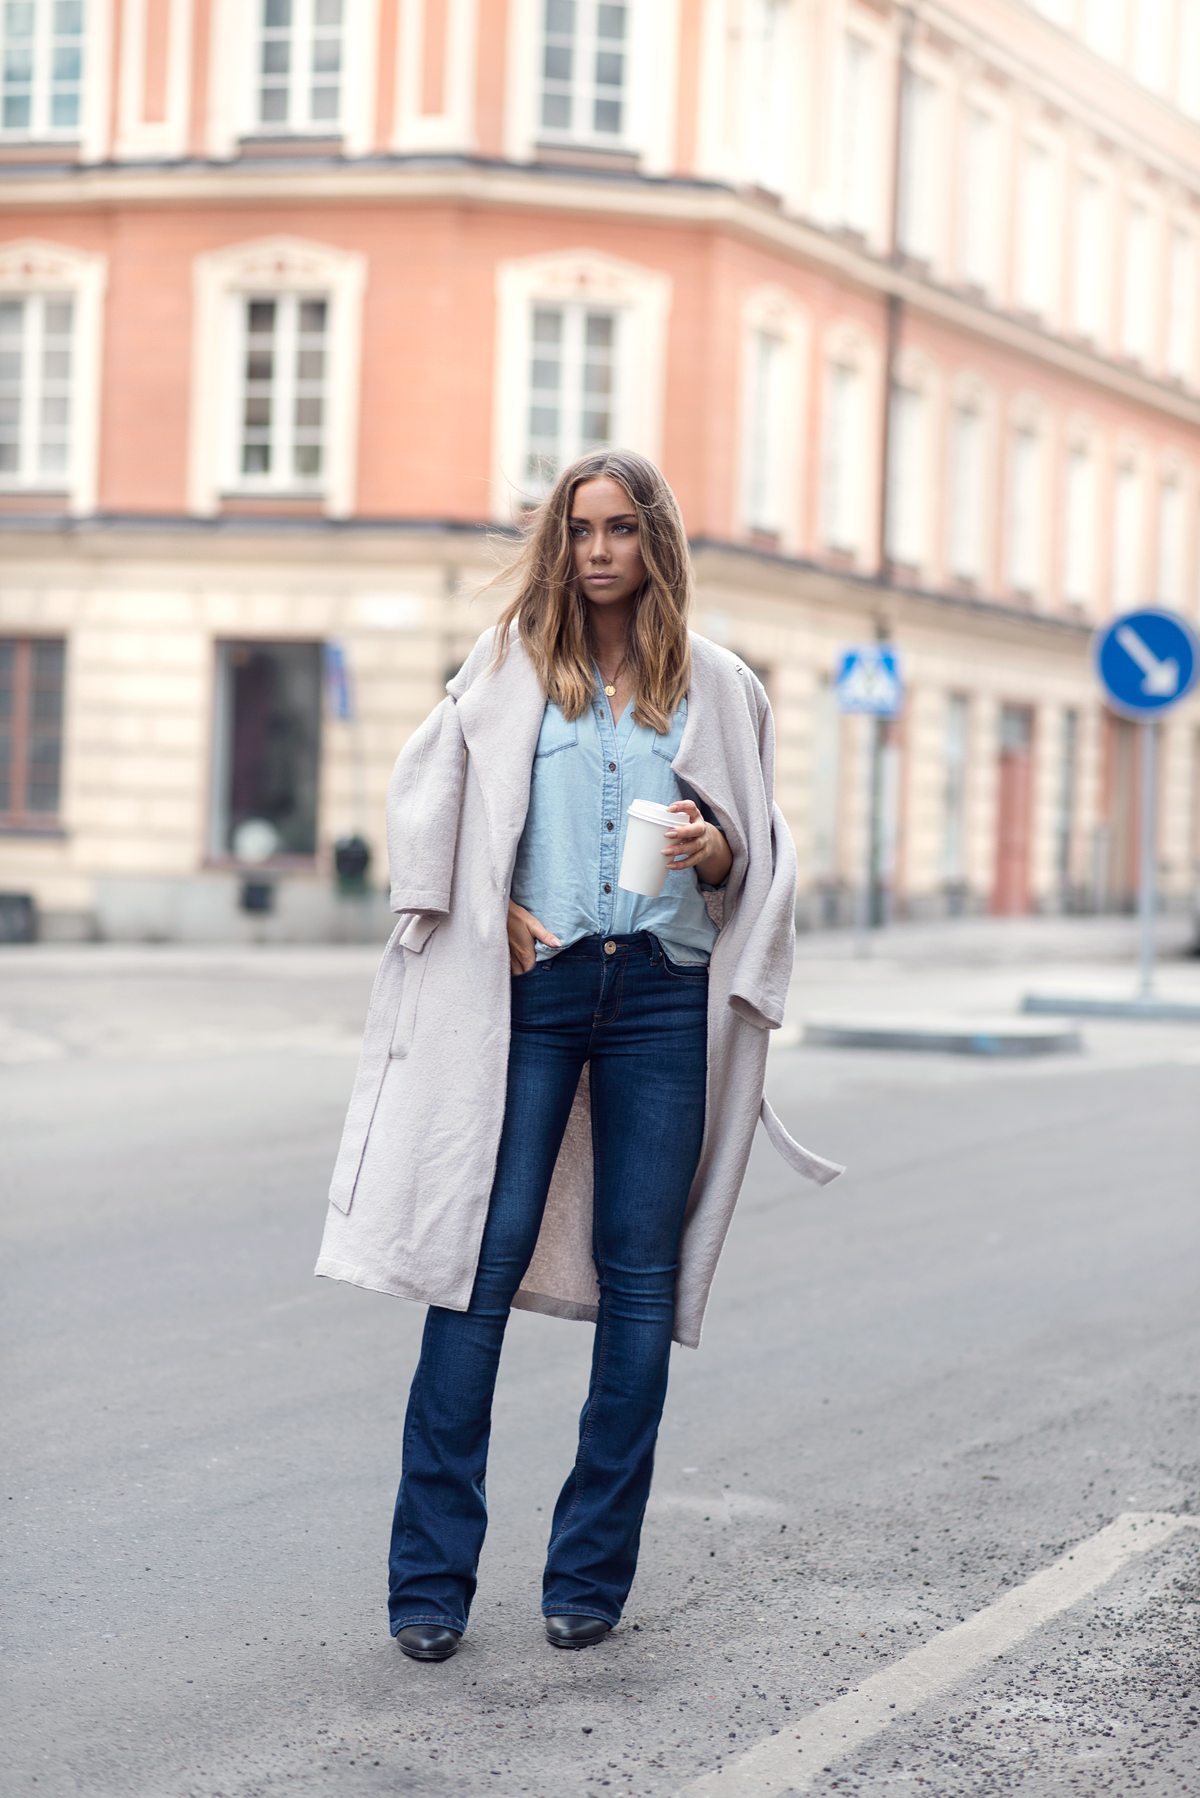 Flared Jeans Outfit Ideas: Lisa Olsson is wearing a pair of denim River Island jeans